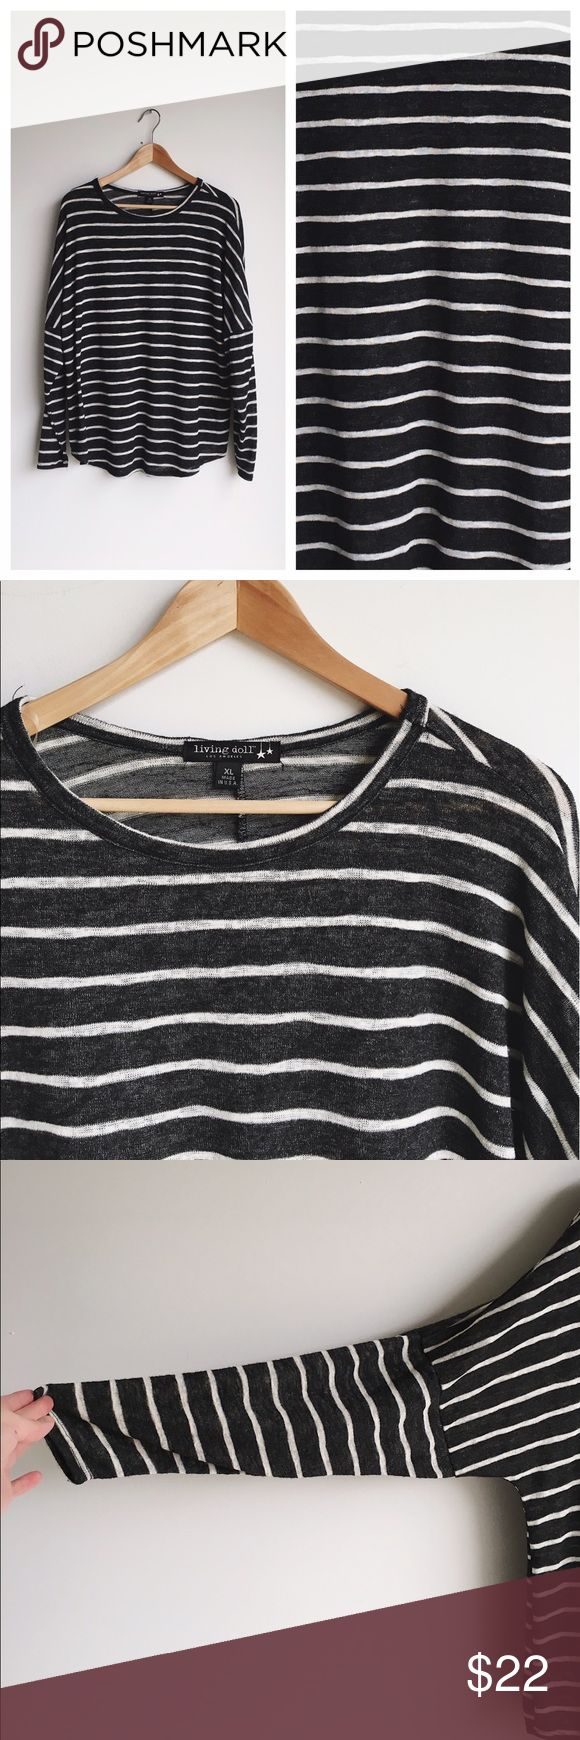 """Black and white striped slouchy tee Casual, comfy, and so cute! 25"""" bust, 26"""" length, 3/4 sleeves with a loose dolman fit. Tops"""